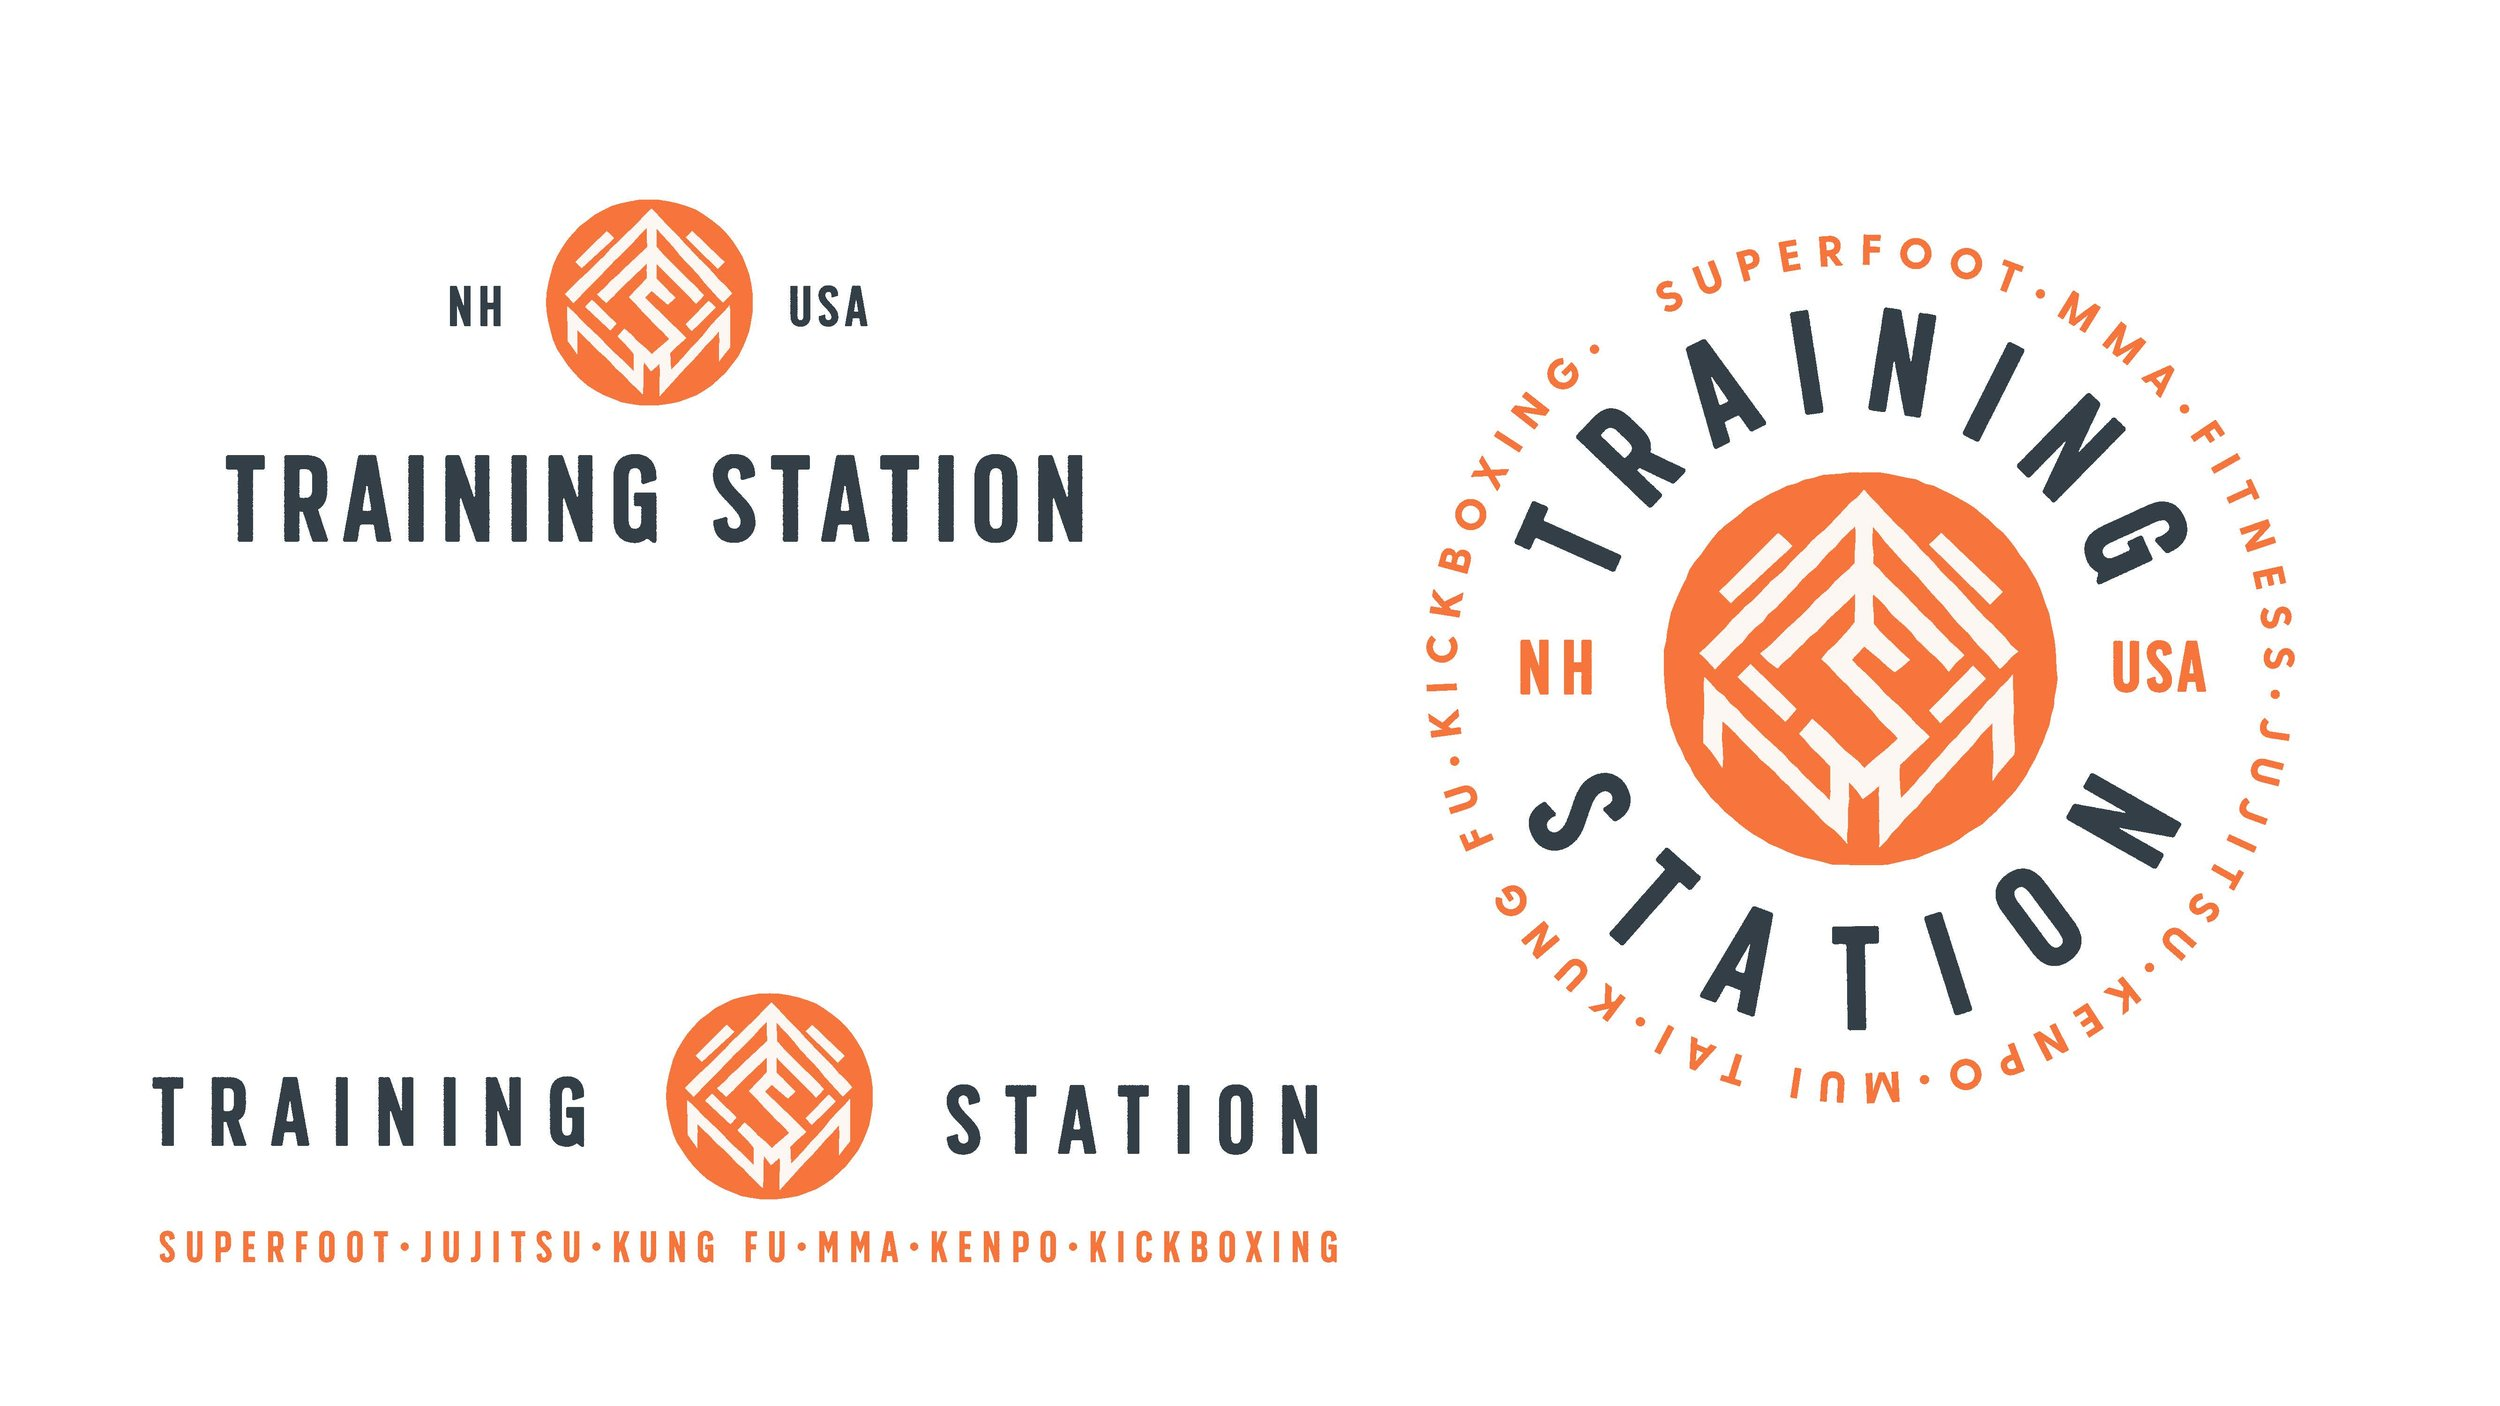 training station_guidelines_Page_4.jpg